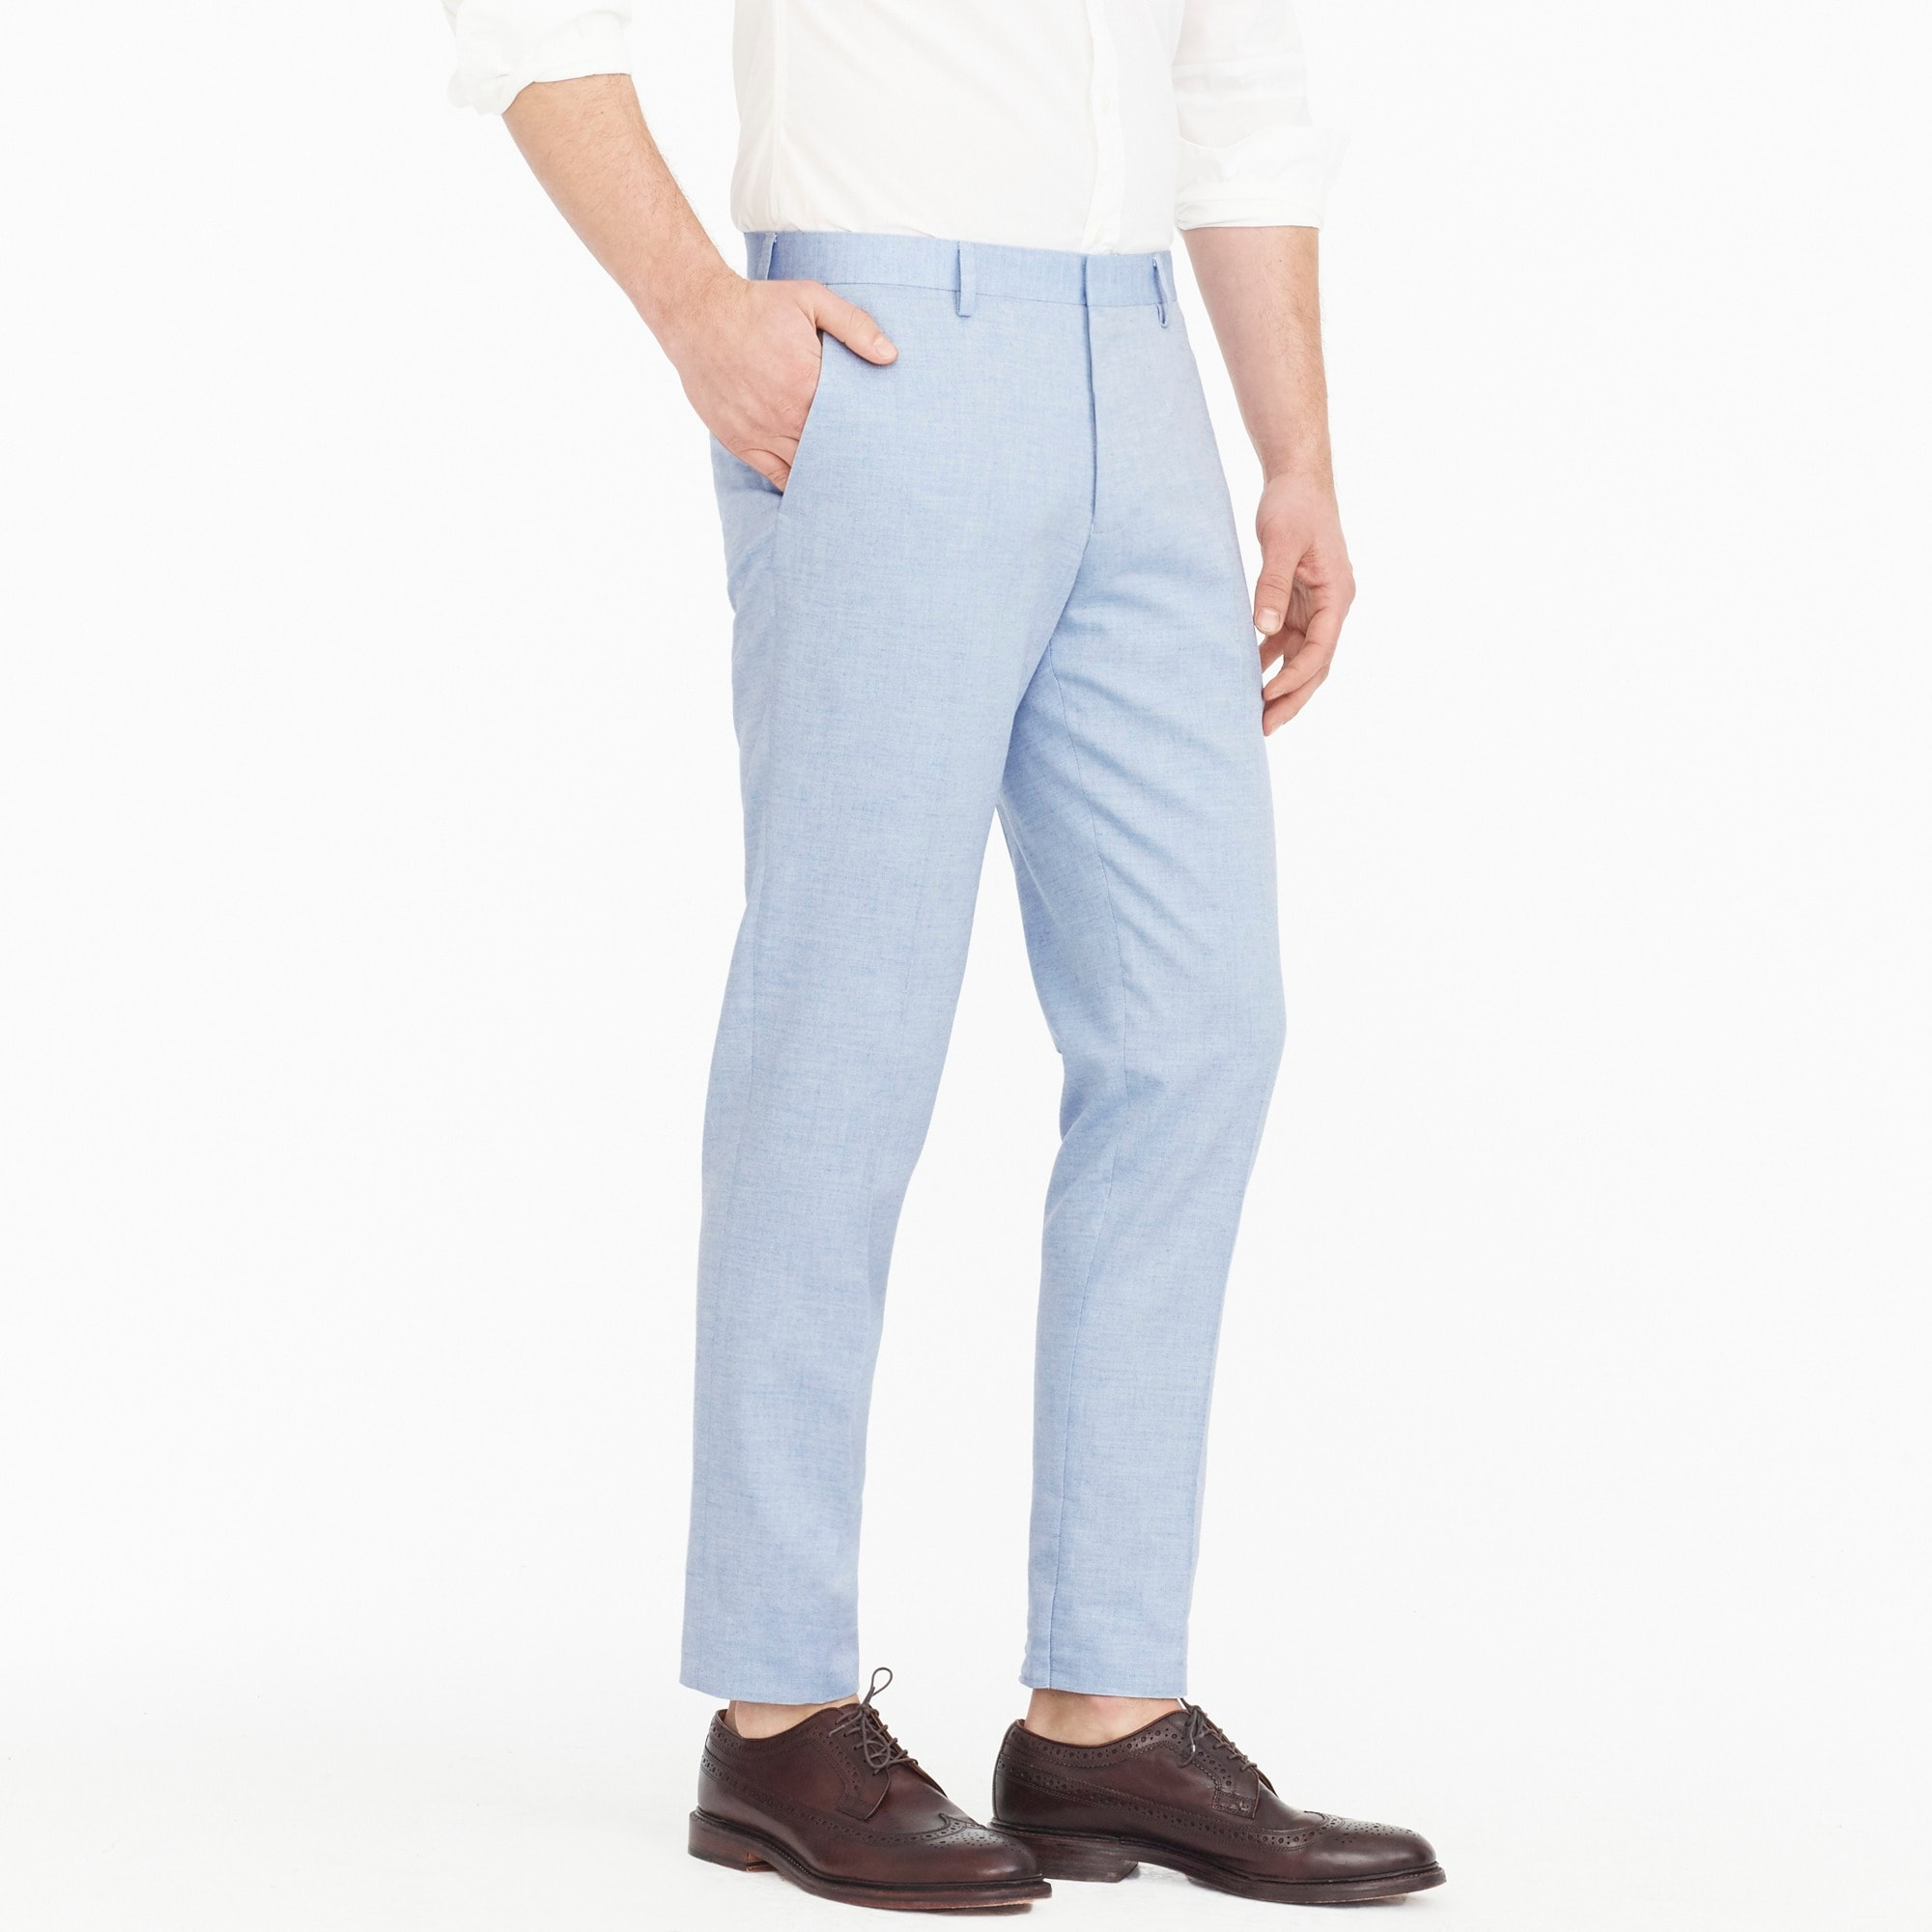 Ludlow Slim-fit suit pant in light blue American wool blend